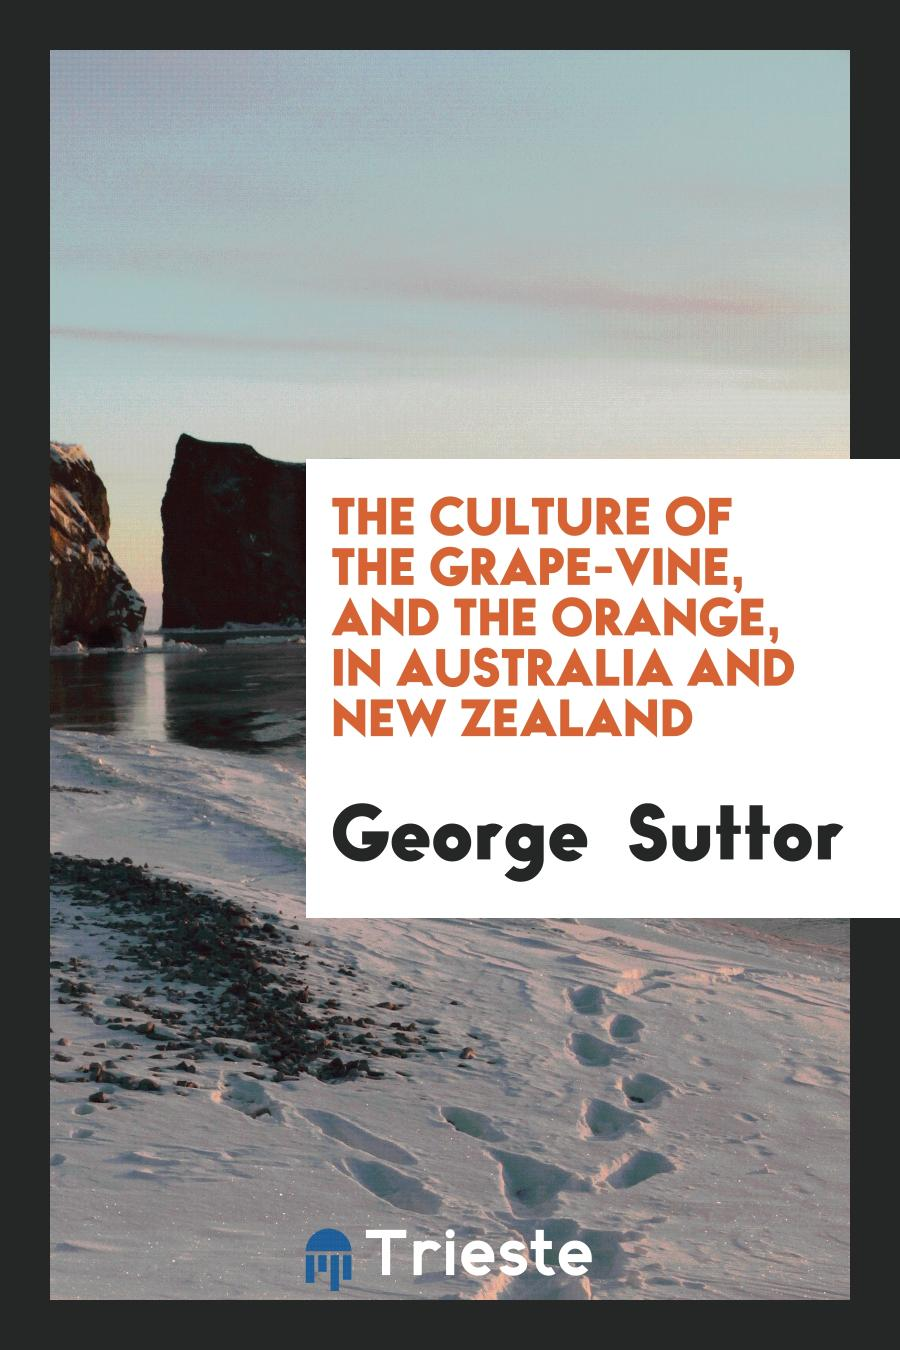 The Culture of the Grape-Vine, and the Orange, in Australia and New Zealand